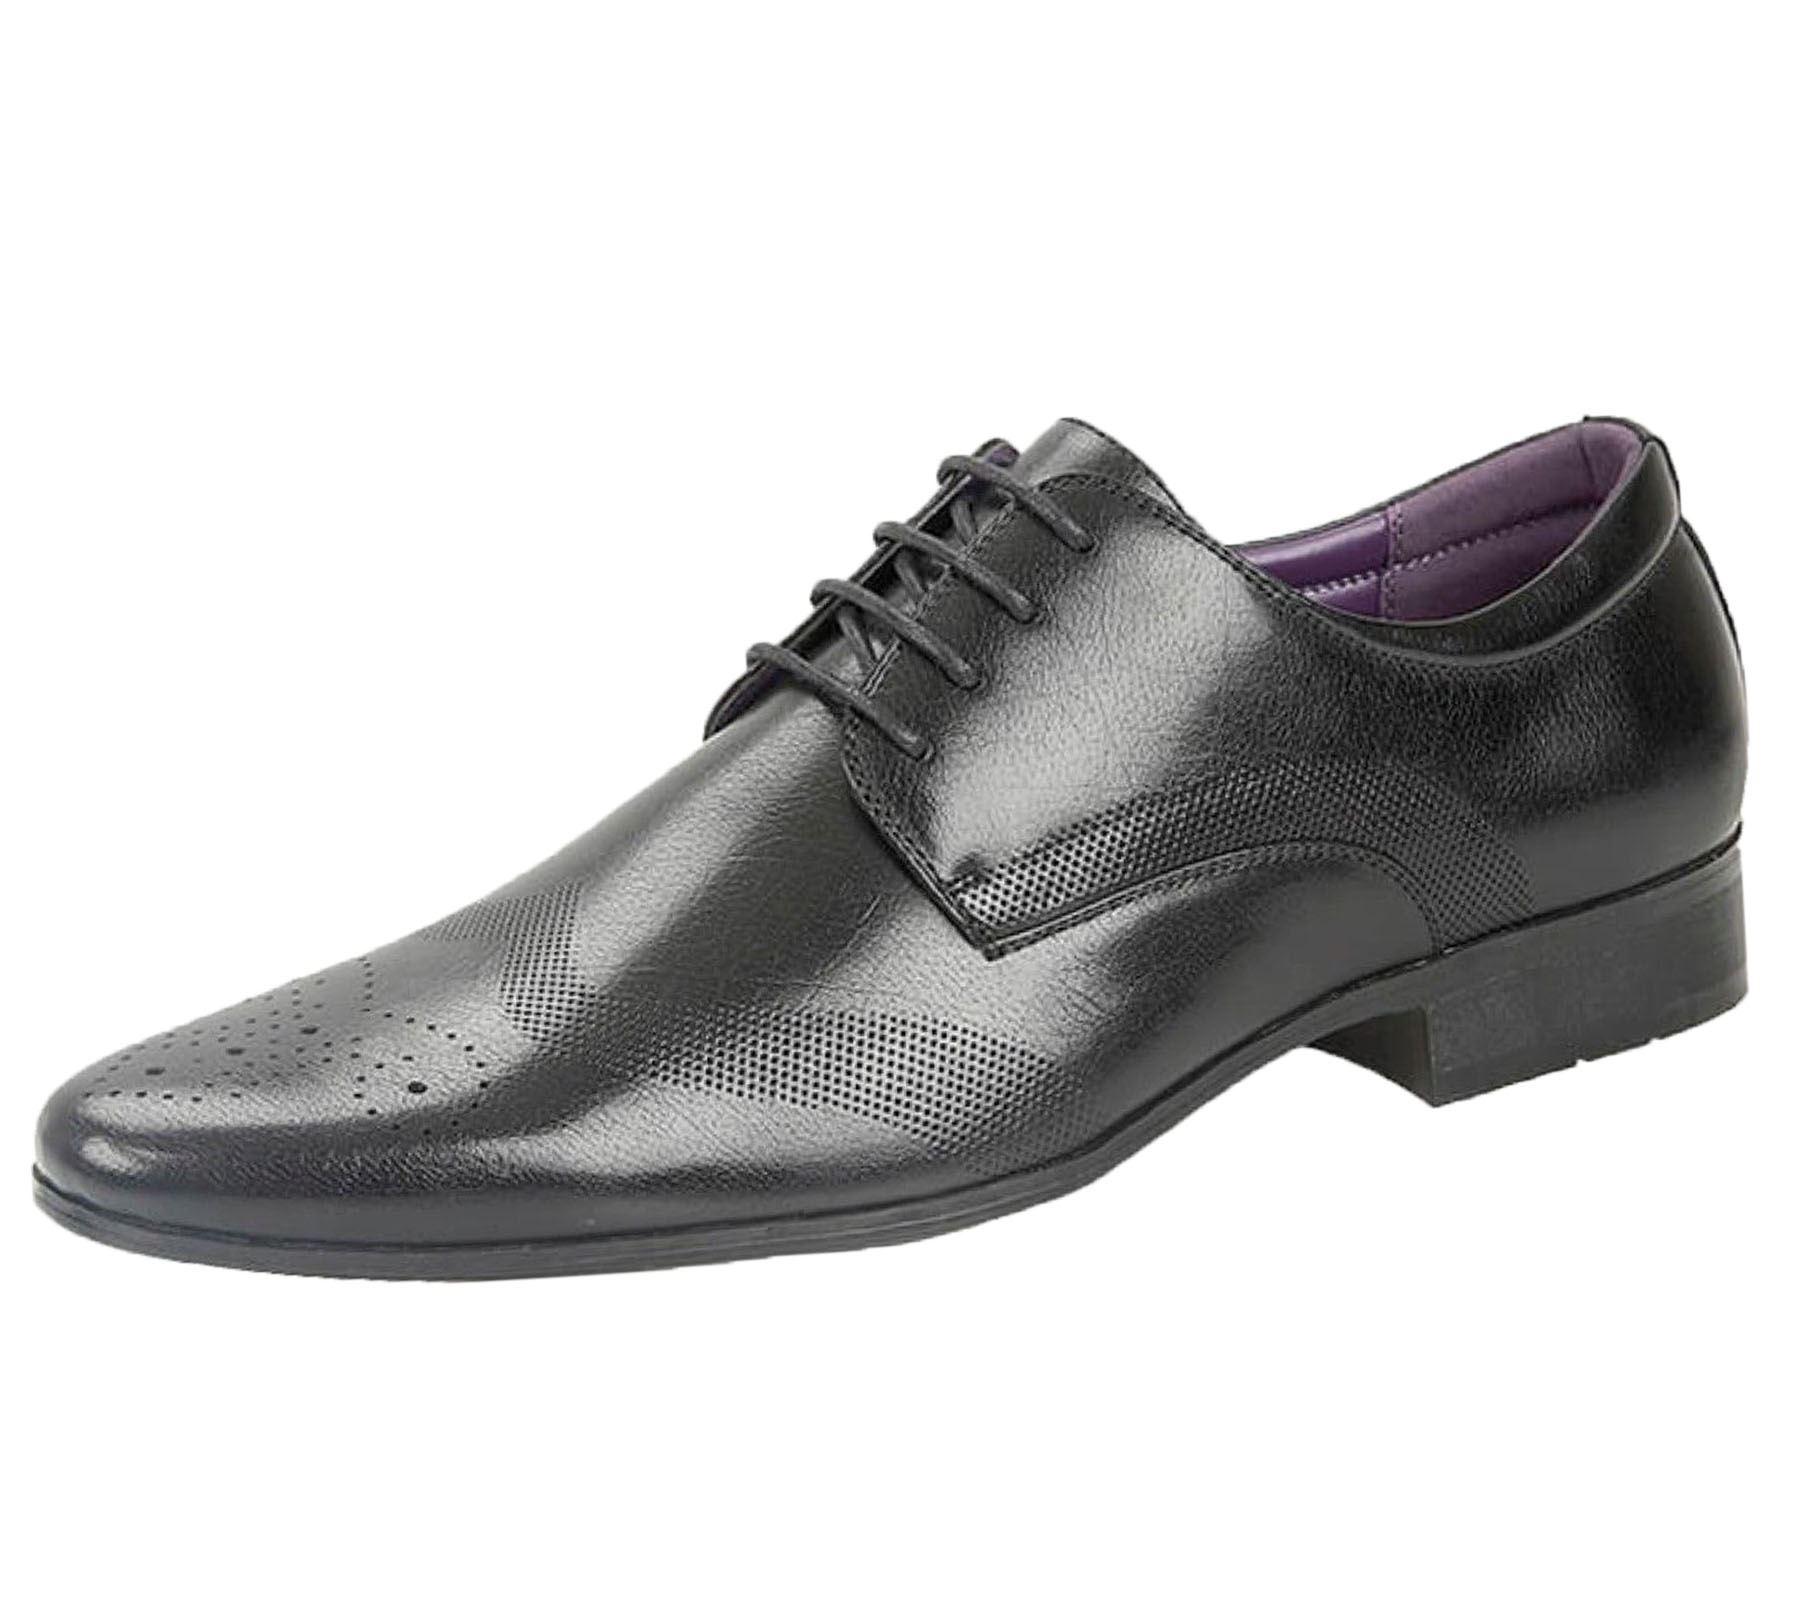 Mens-Brogues-Shoes-Office-Wedding-Formal-Smart-Dress-Shoes-New-Size miniatura 8